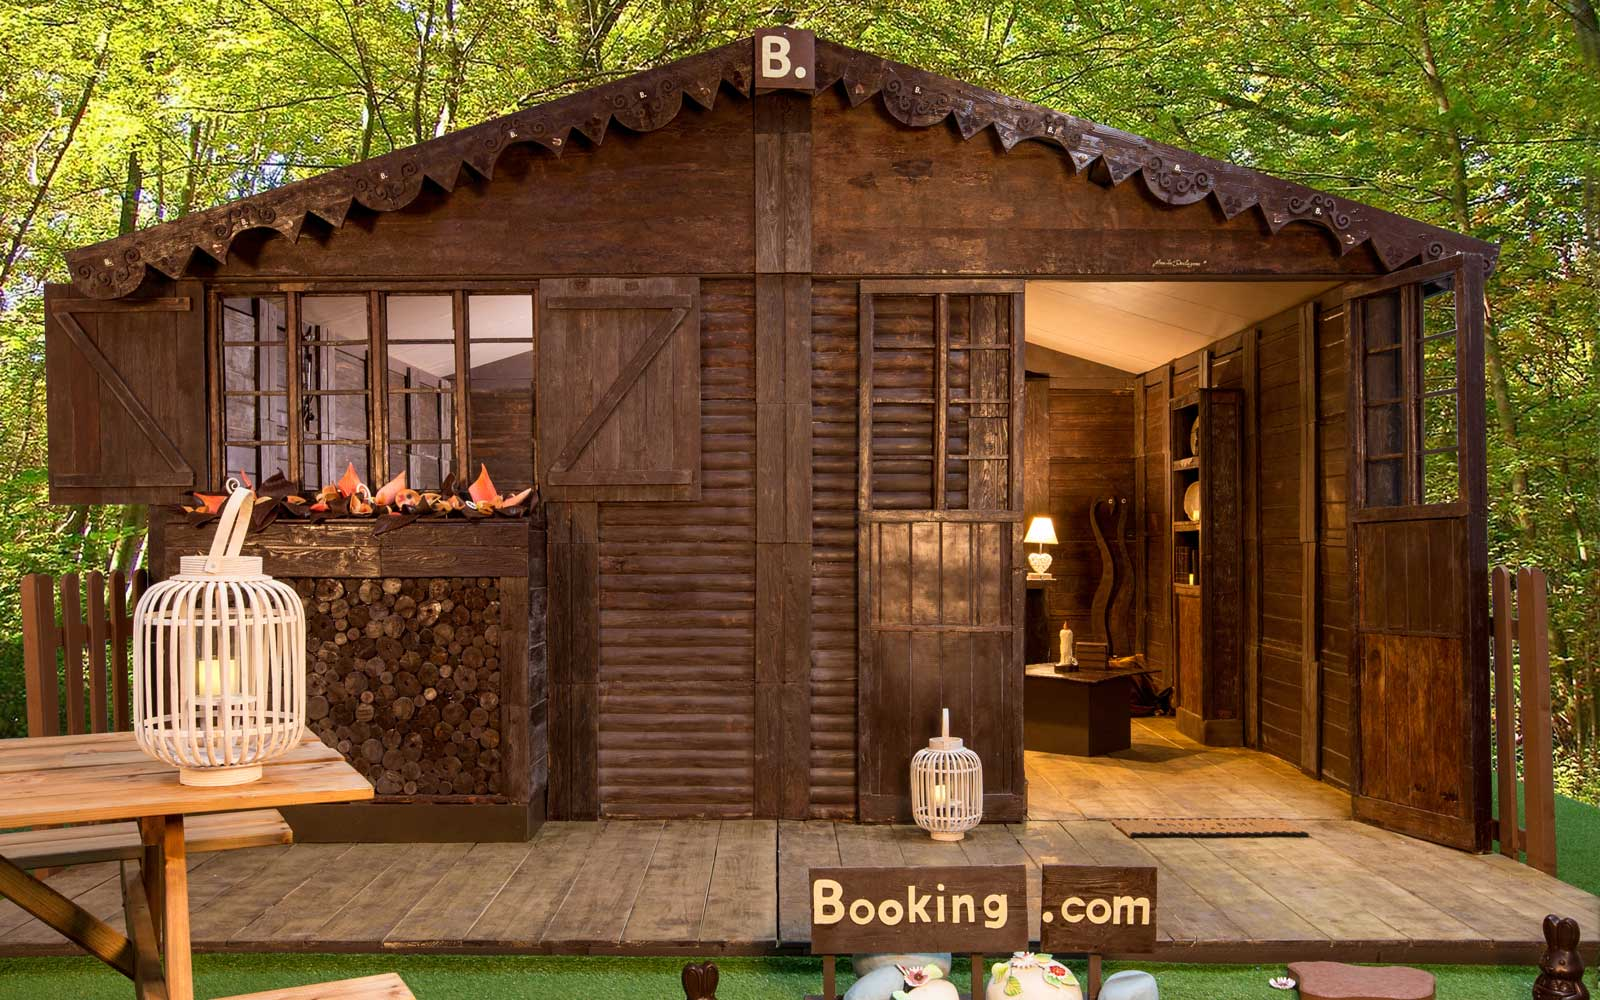 Booking.com's Chocolate Cottage in France